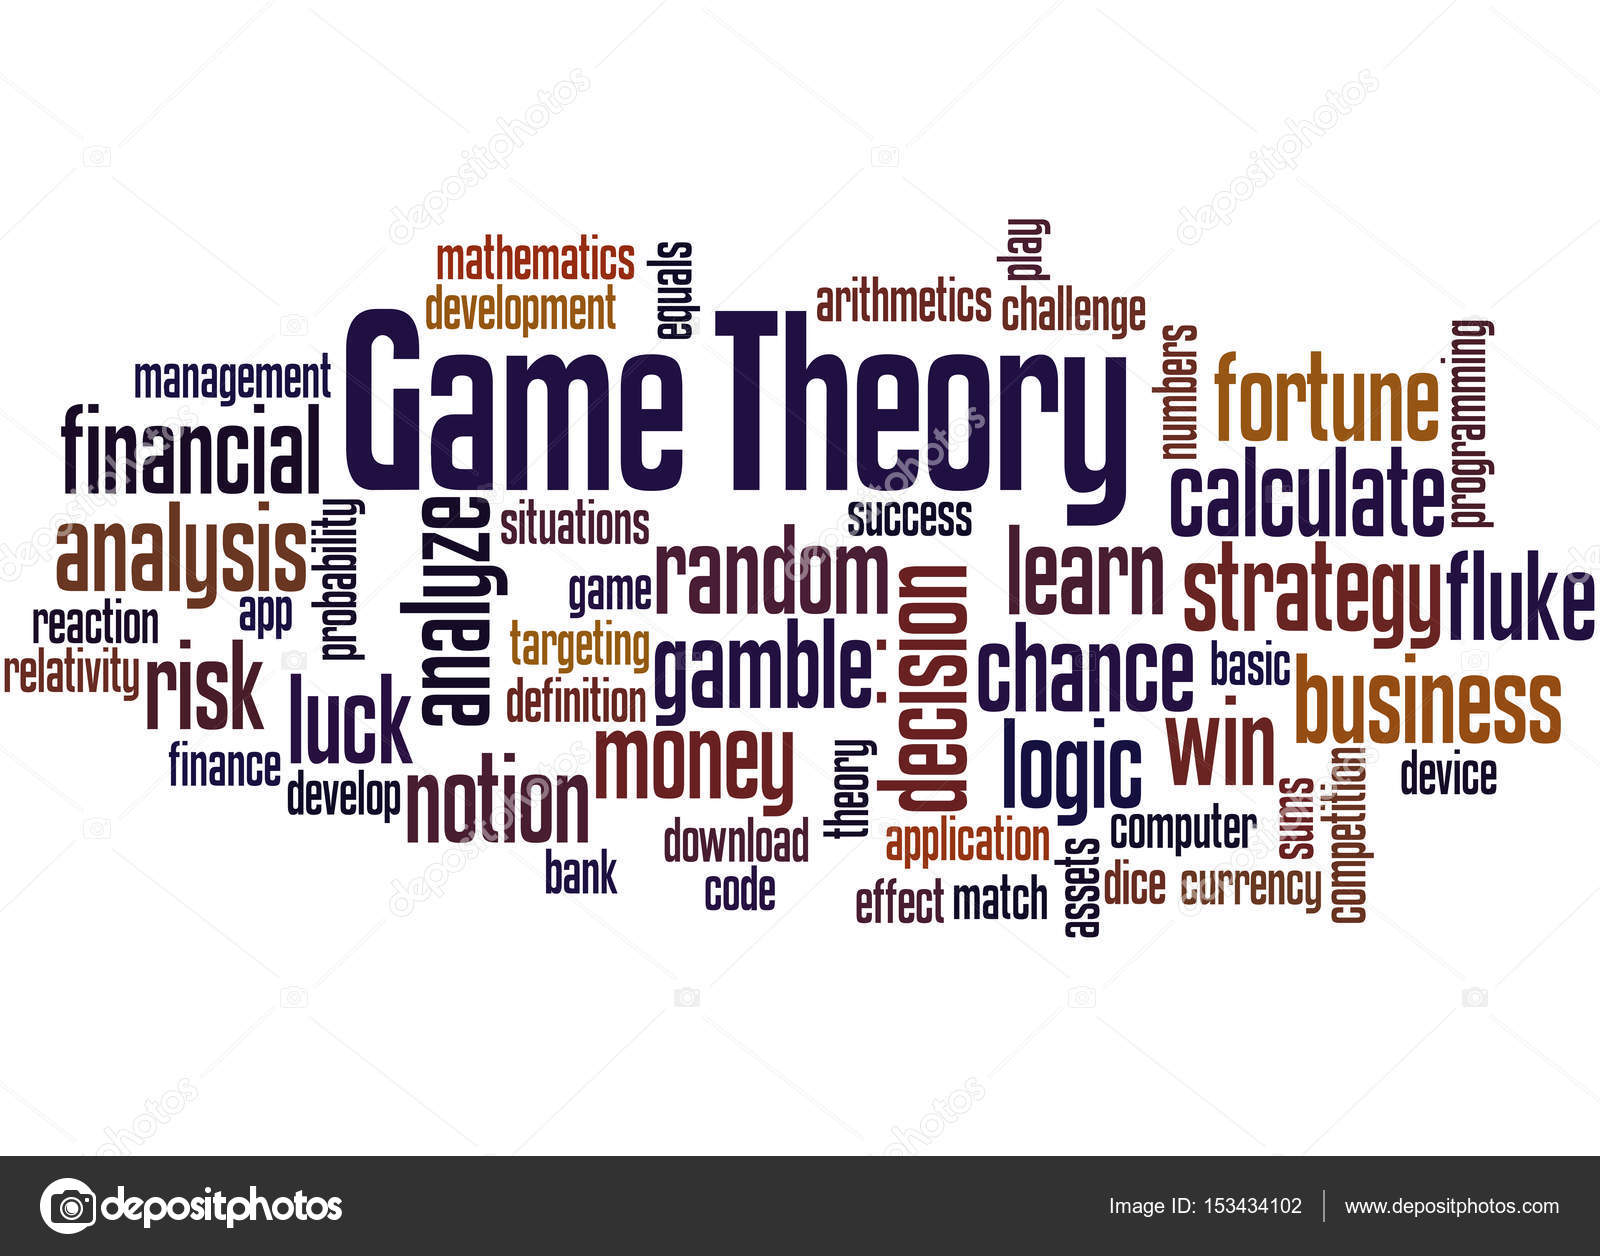 Stock options game theory